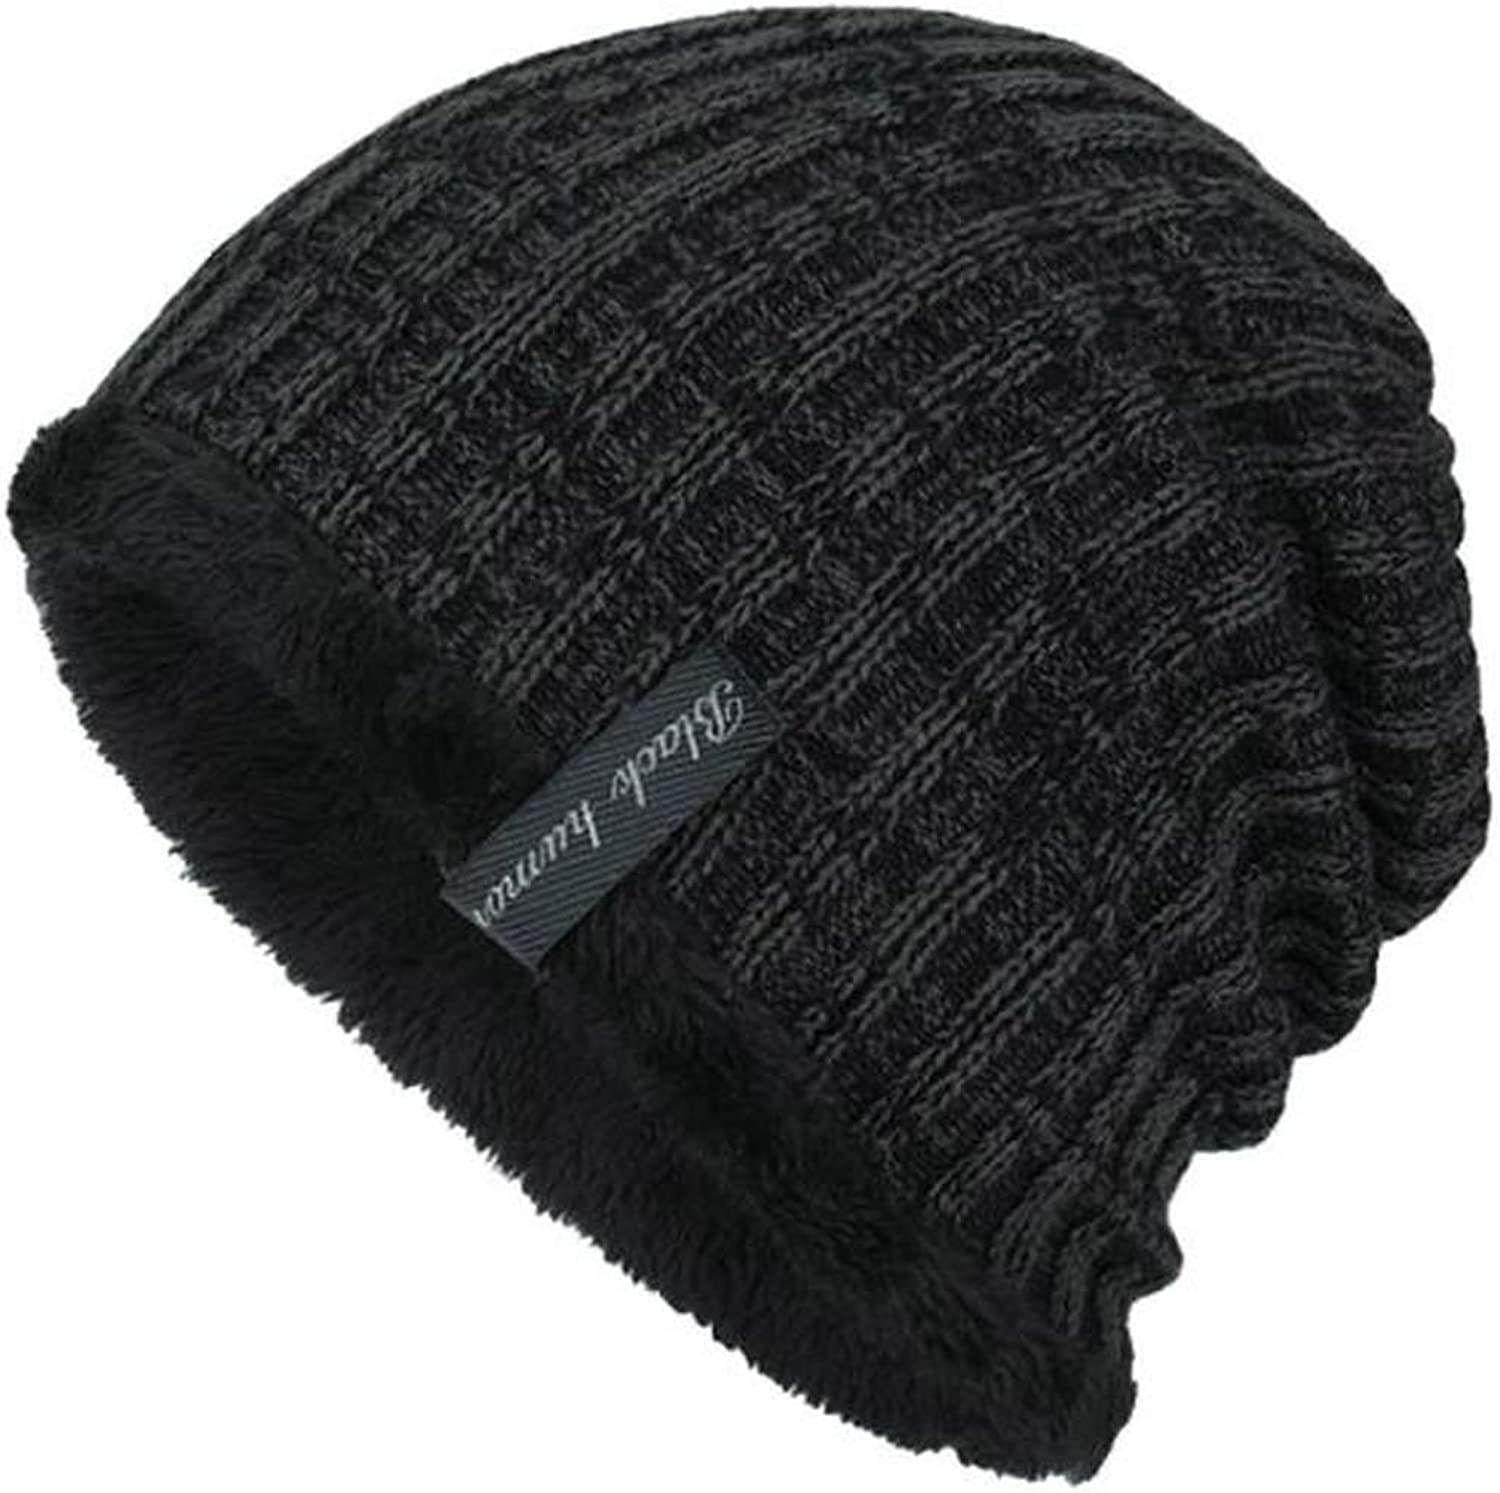 Unisex Knit Cap Hedging Head Hat Beanie Caps Winter Keep Warm Outdoor Fashion Hats Cashmere Casual Solid caps